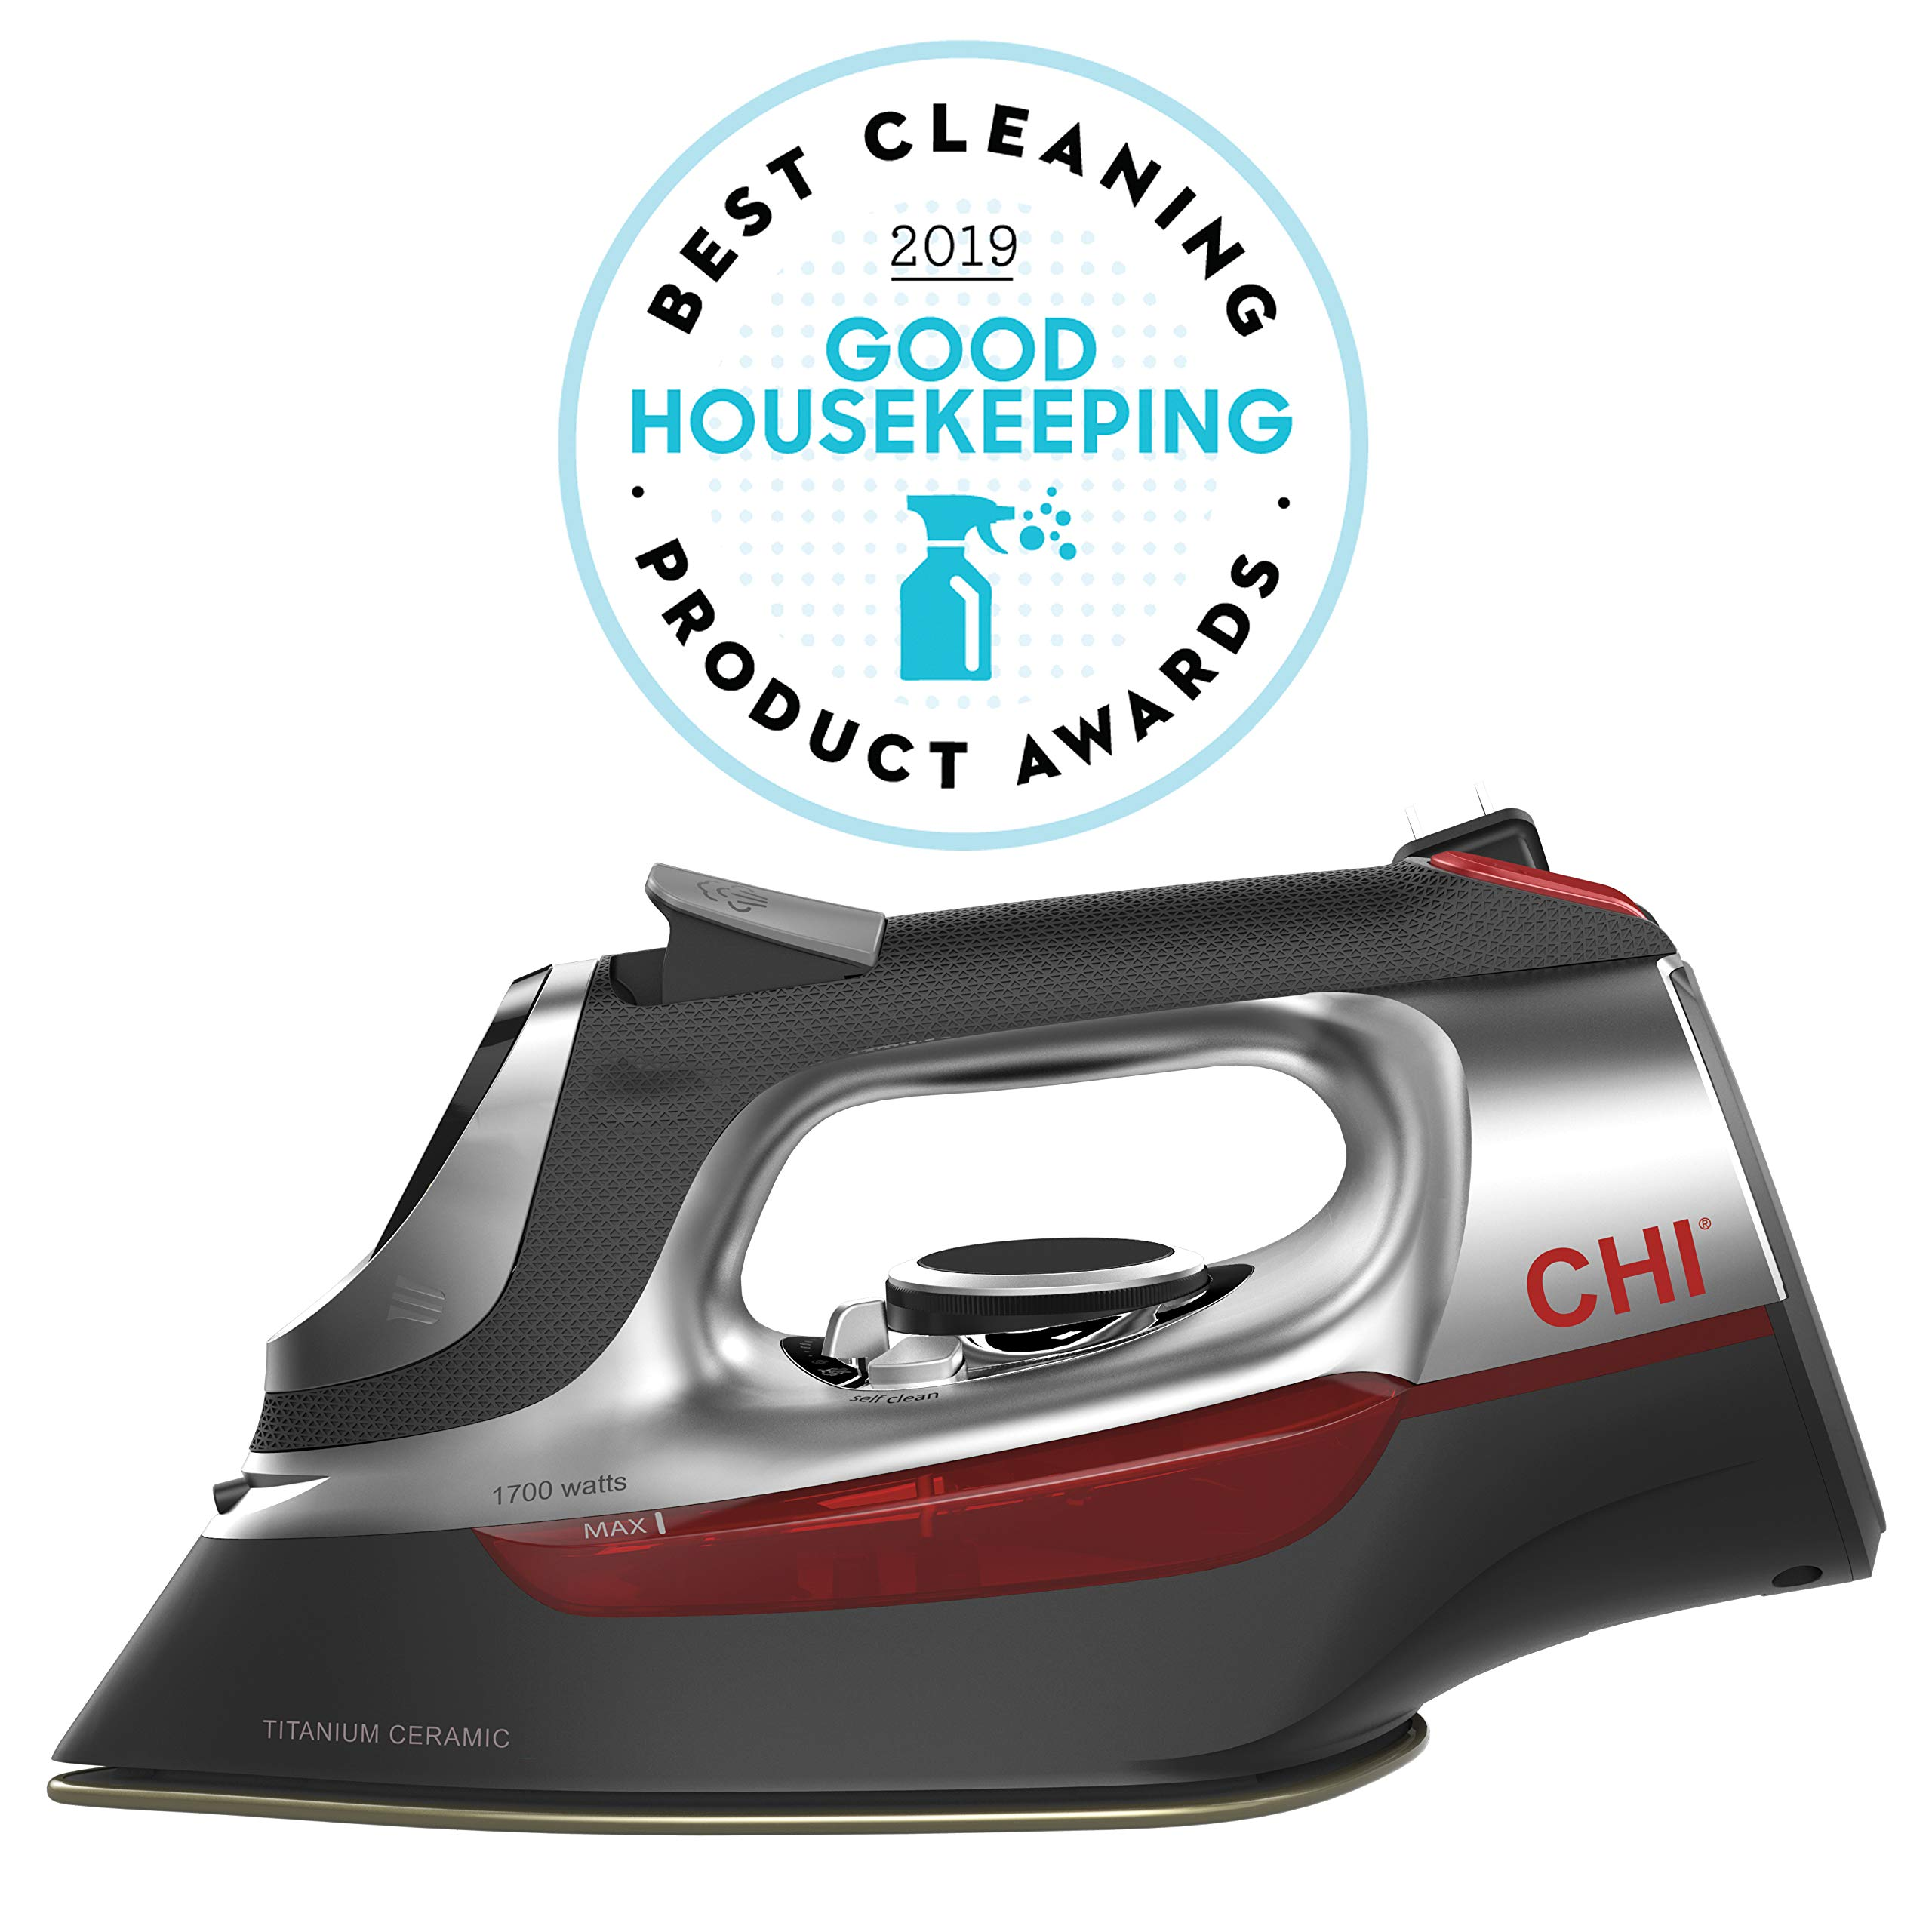 CHI (13102) Steam Iron with Retractable Cord, Electronic temperature controls, 1700 Watts, Titanium Infused Ceramic Soleplate & Over 400 Steam Holes, Professional Grade by CHI Steam